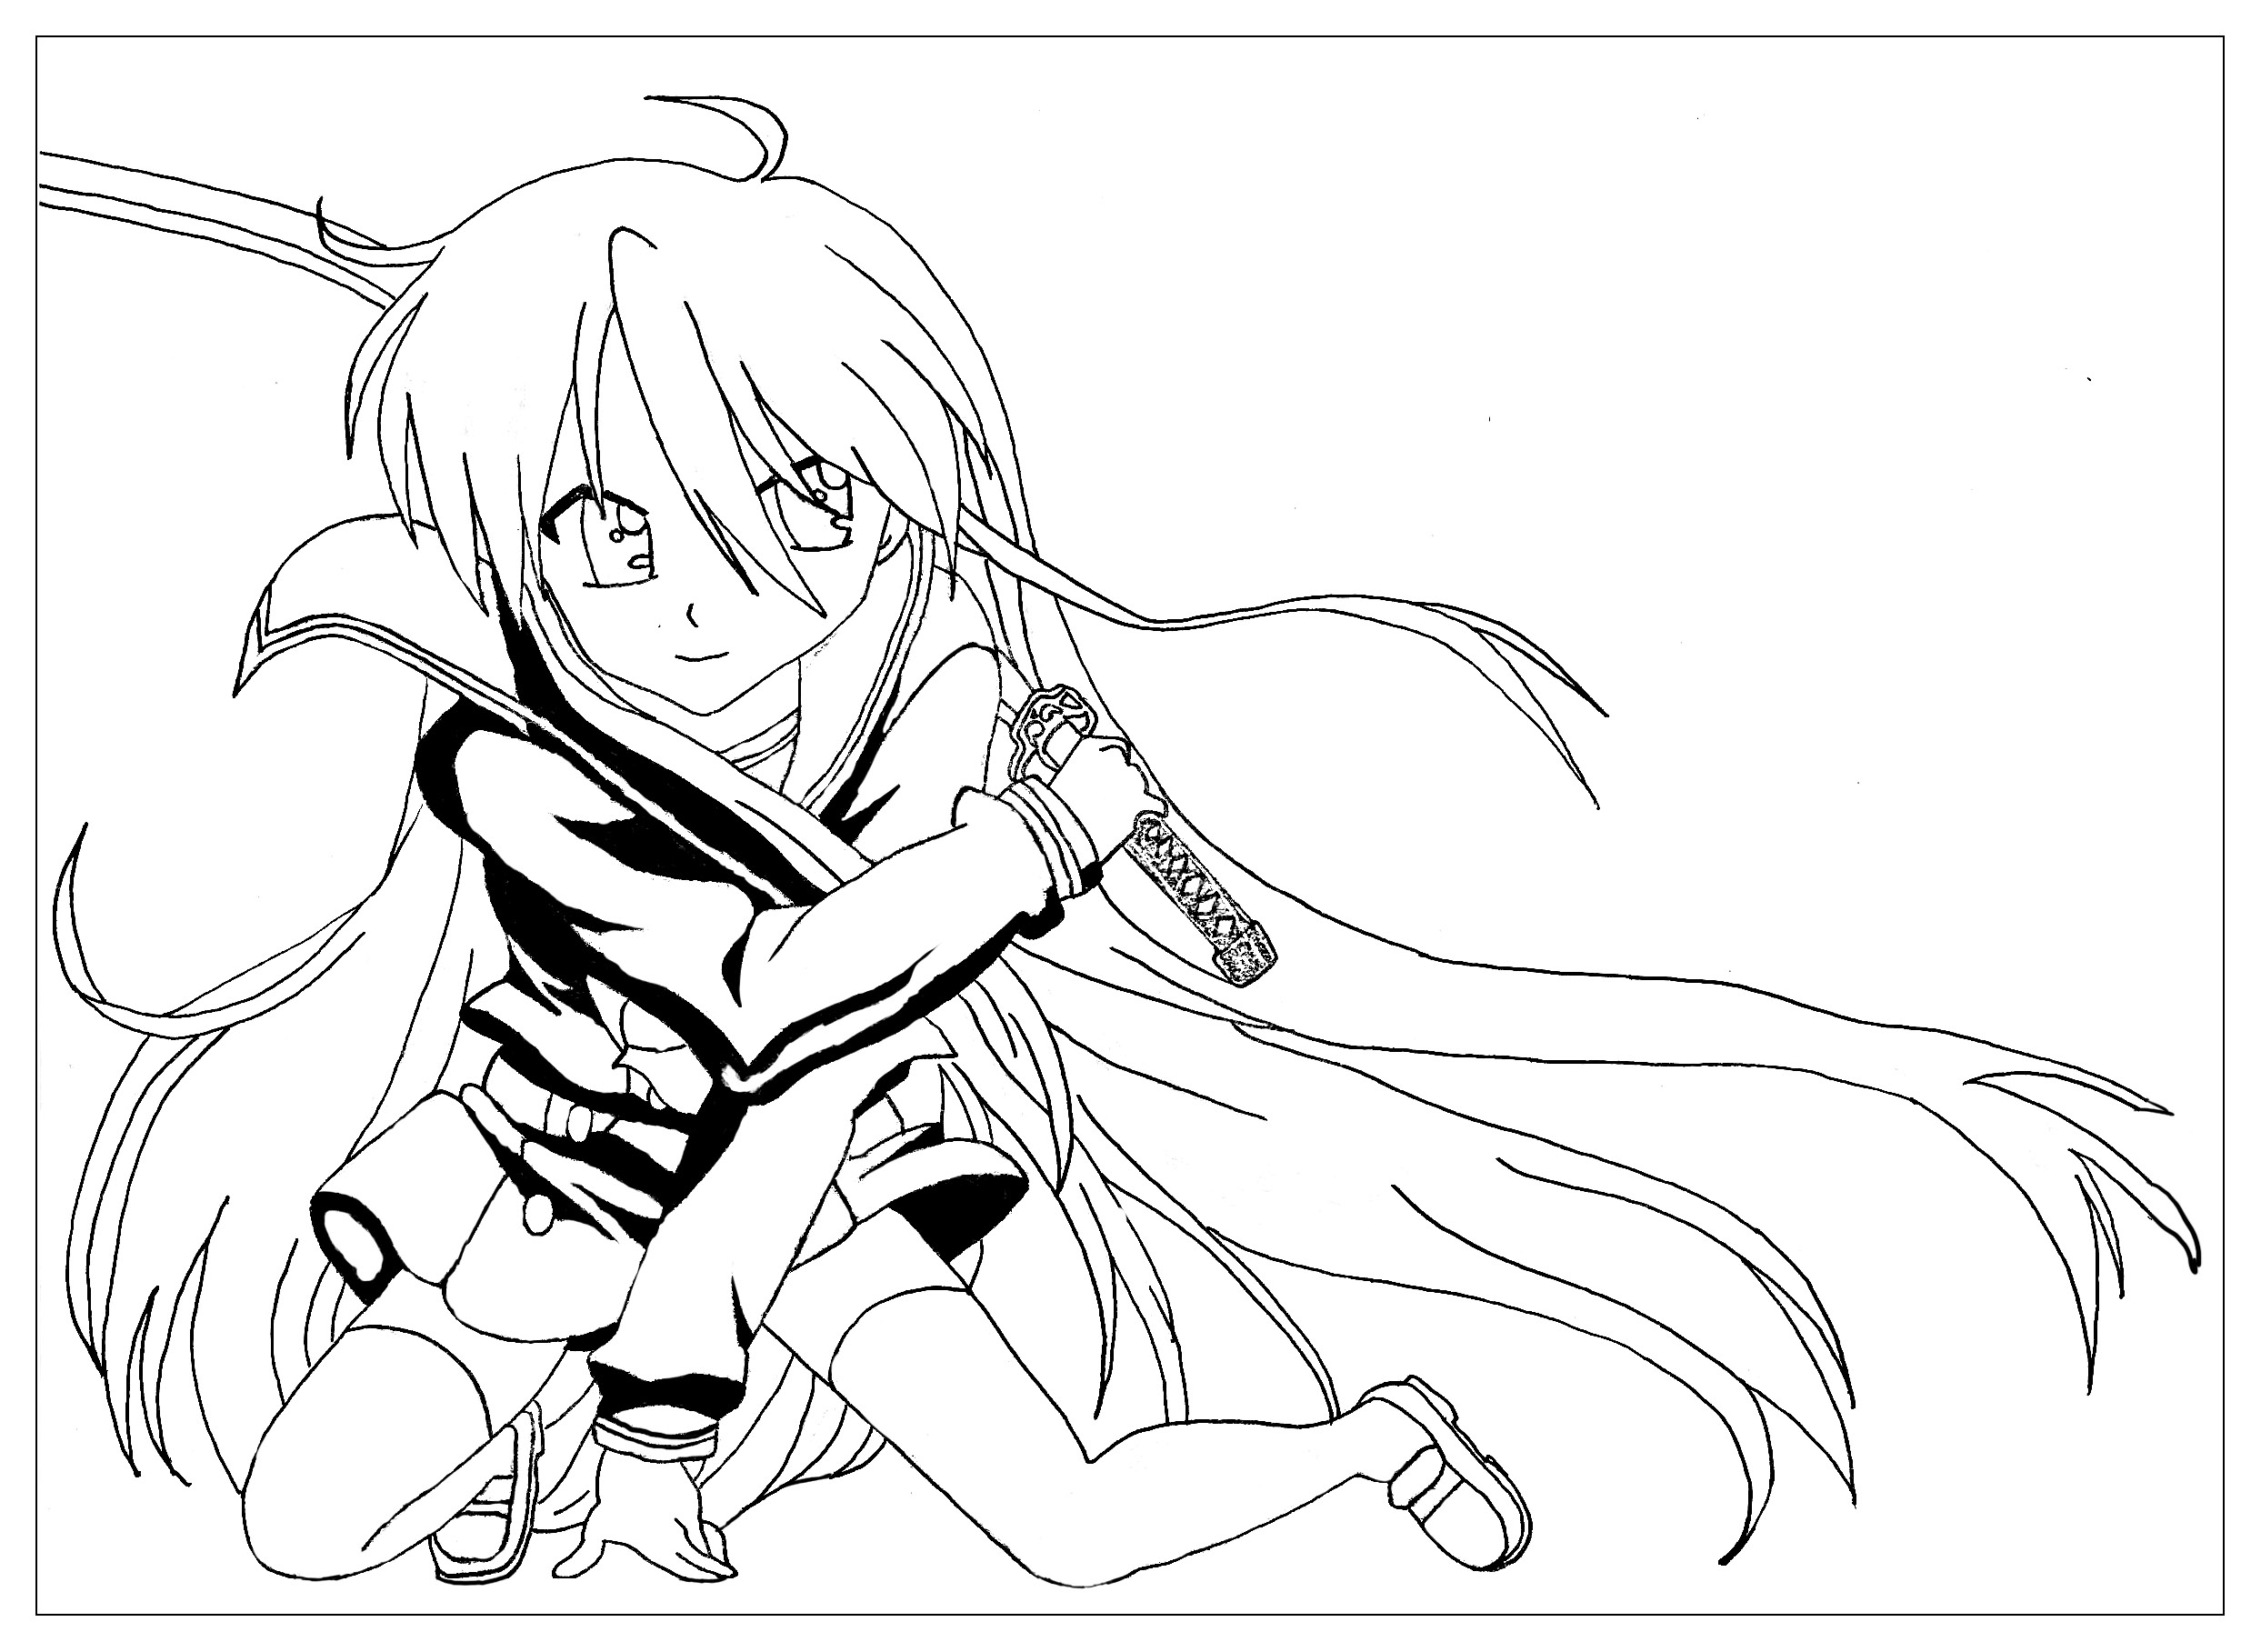 Manga saber warrior girl by krissy | Manga / Anime - Coloring pages ...